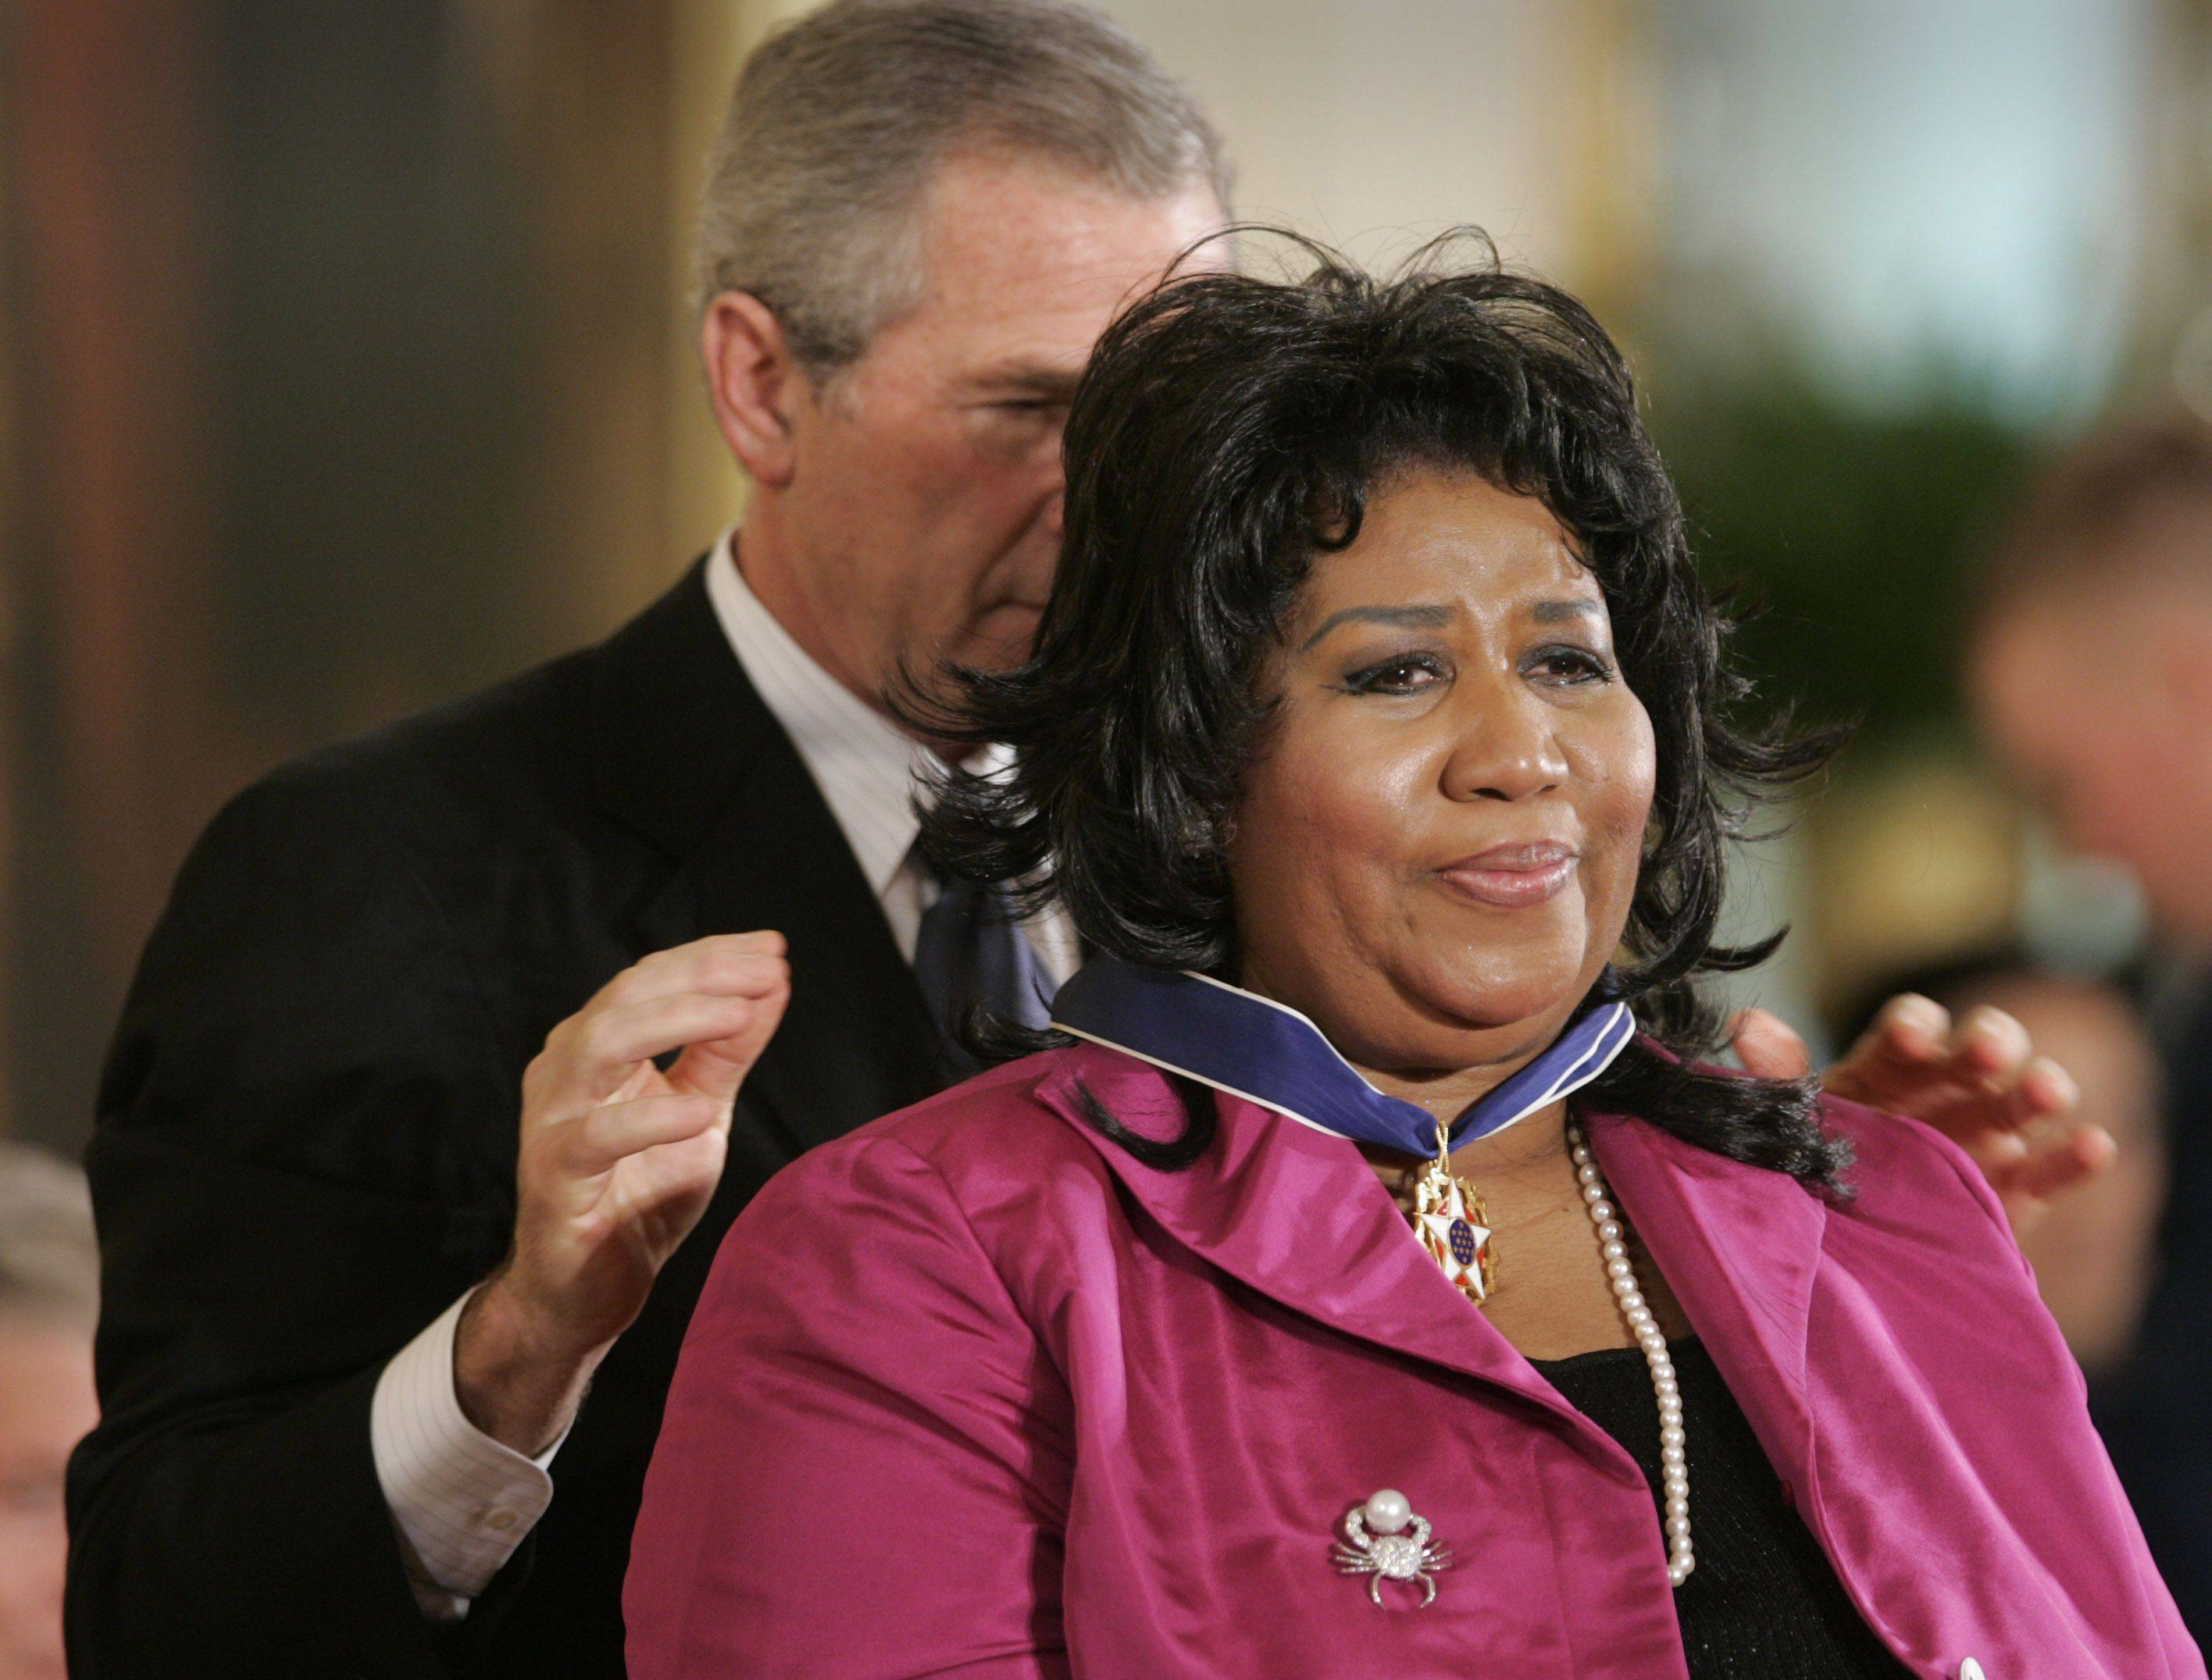 President Bush awards singer Aretha Franklin the Presidential Medal of Freedom Award in the East Room of the White House, Wednesday, Nov. 9, 2005, in Washington.